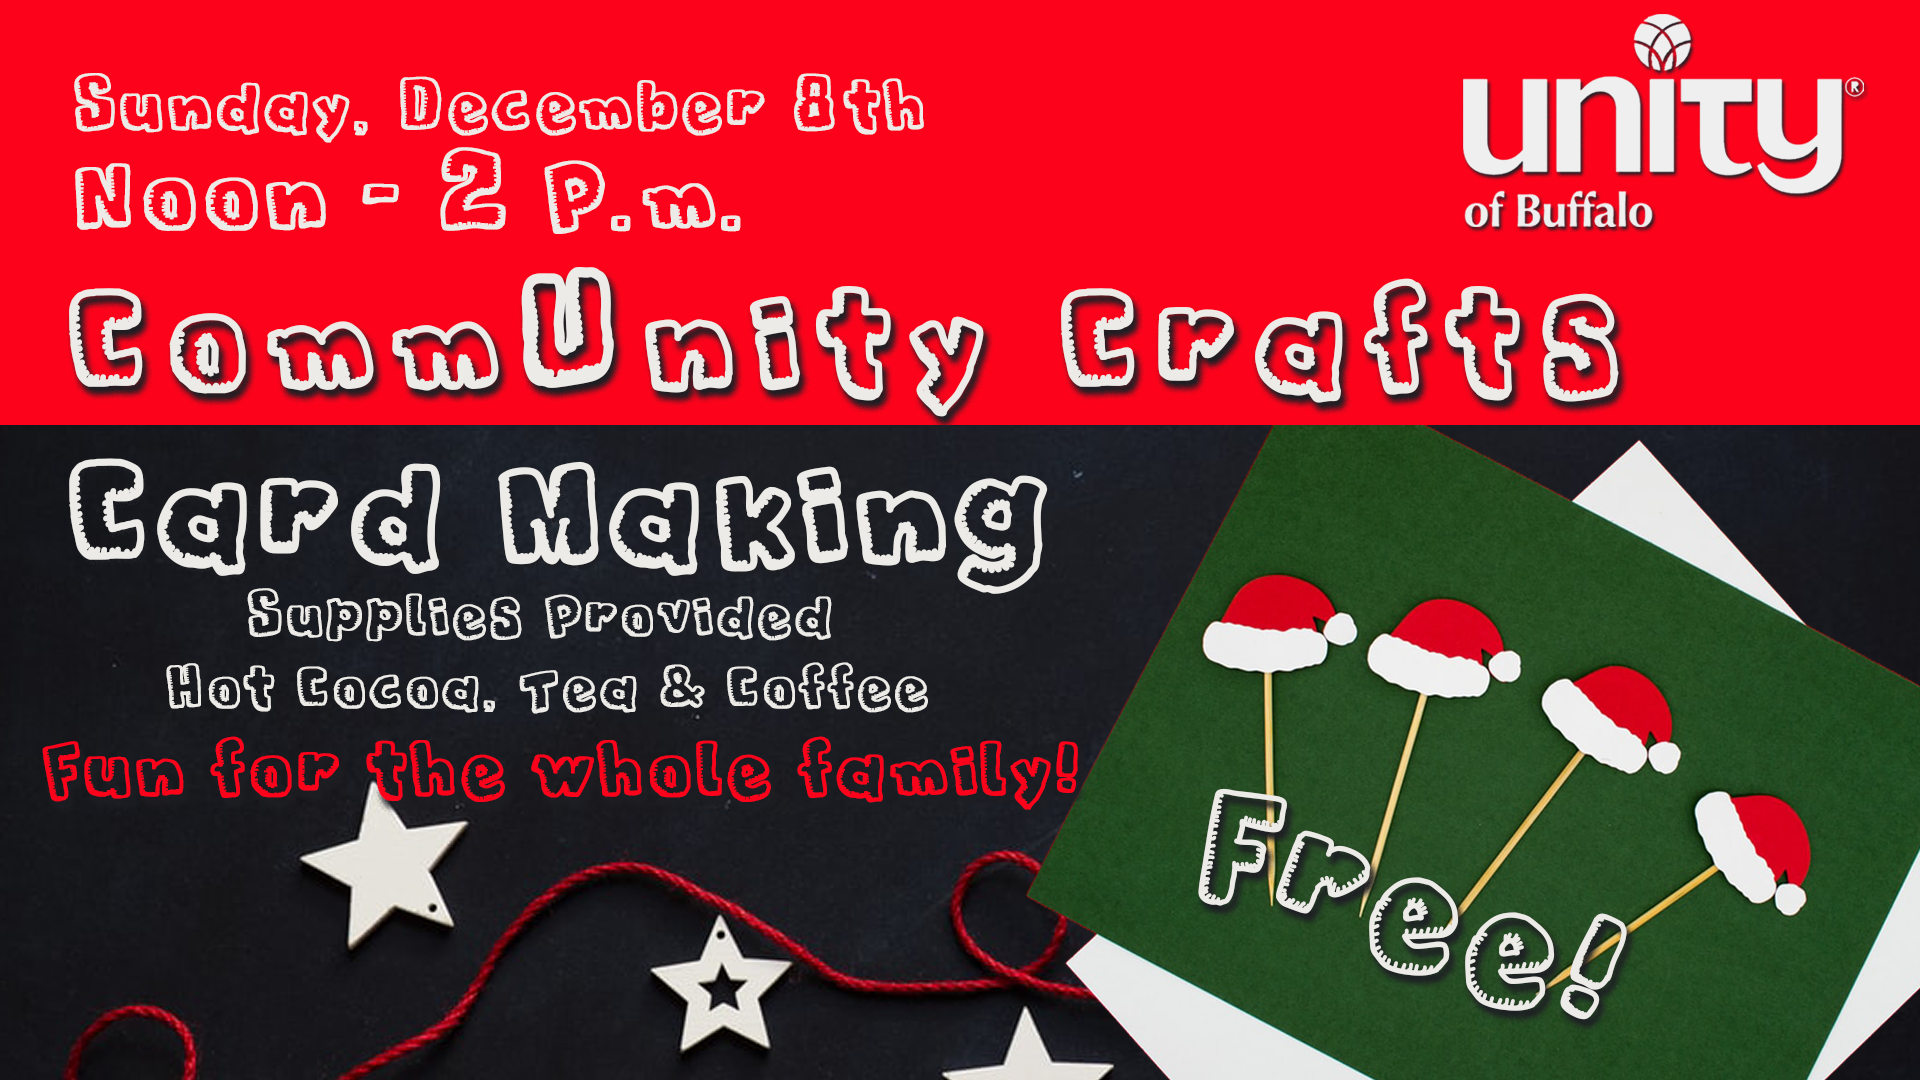 Christmas Card Making at Unity of Buffalo